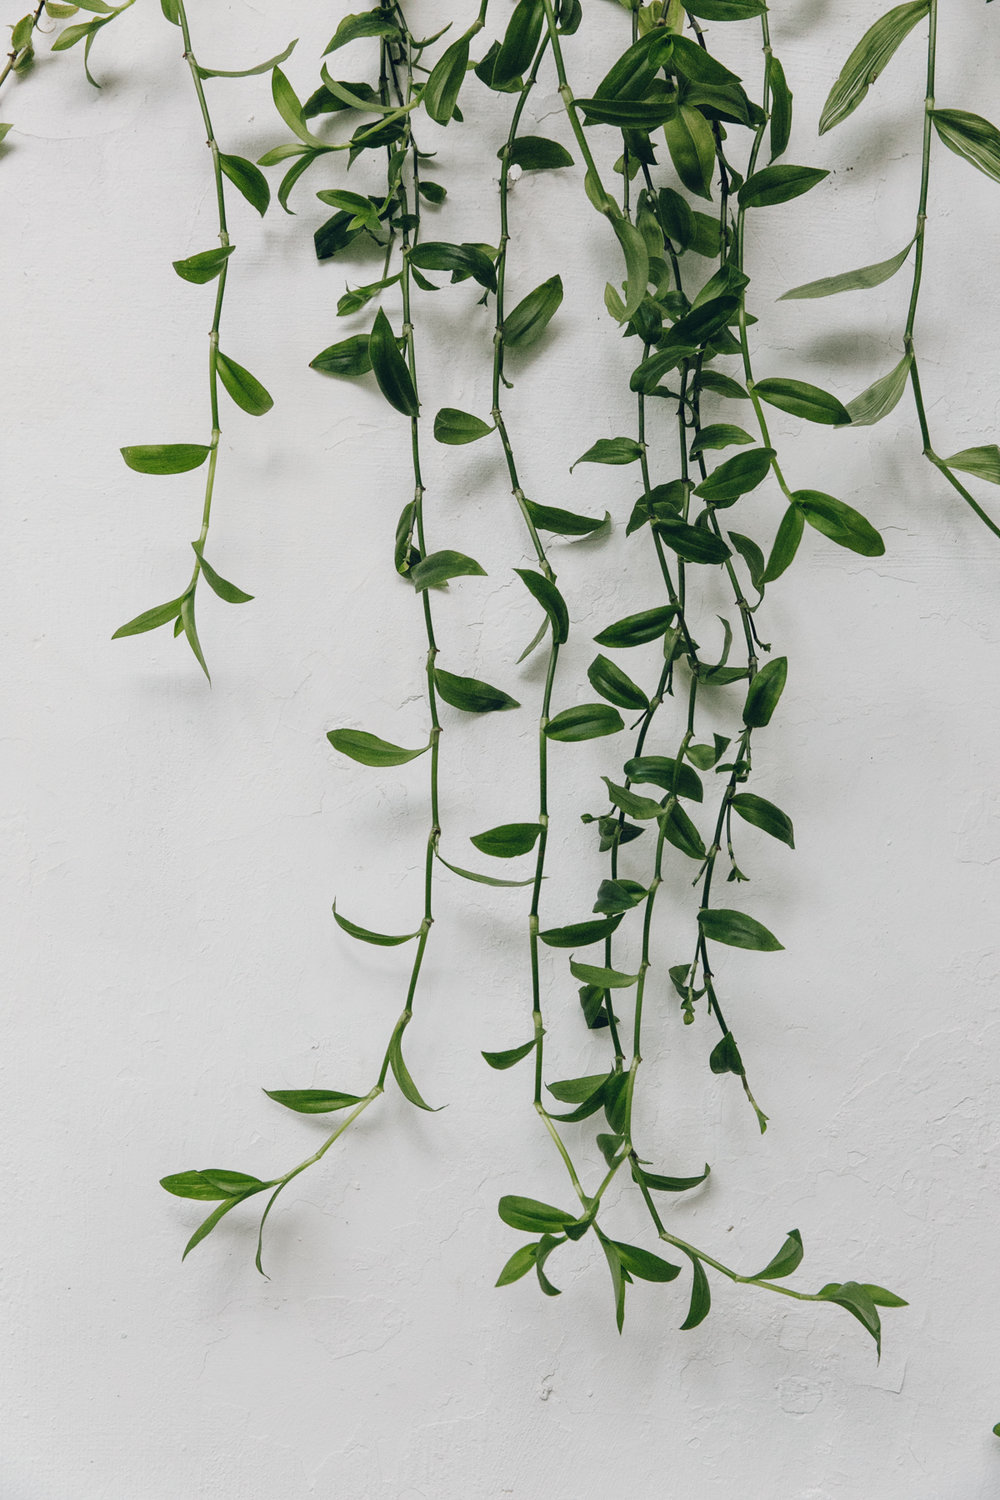 Plants decorating the walls.